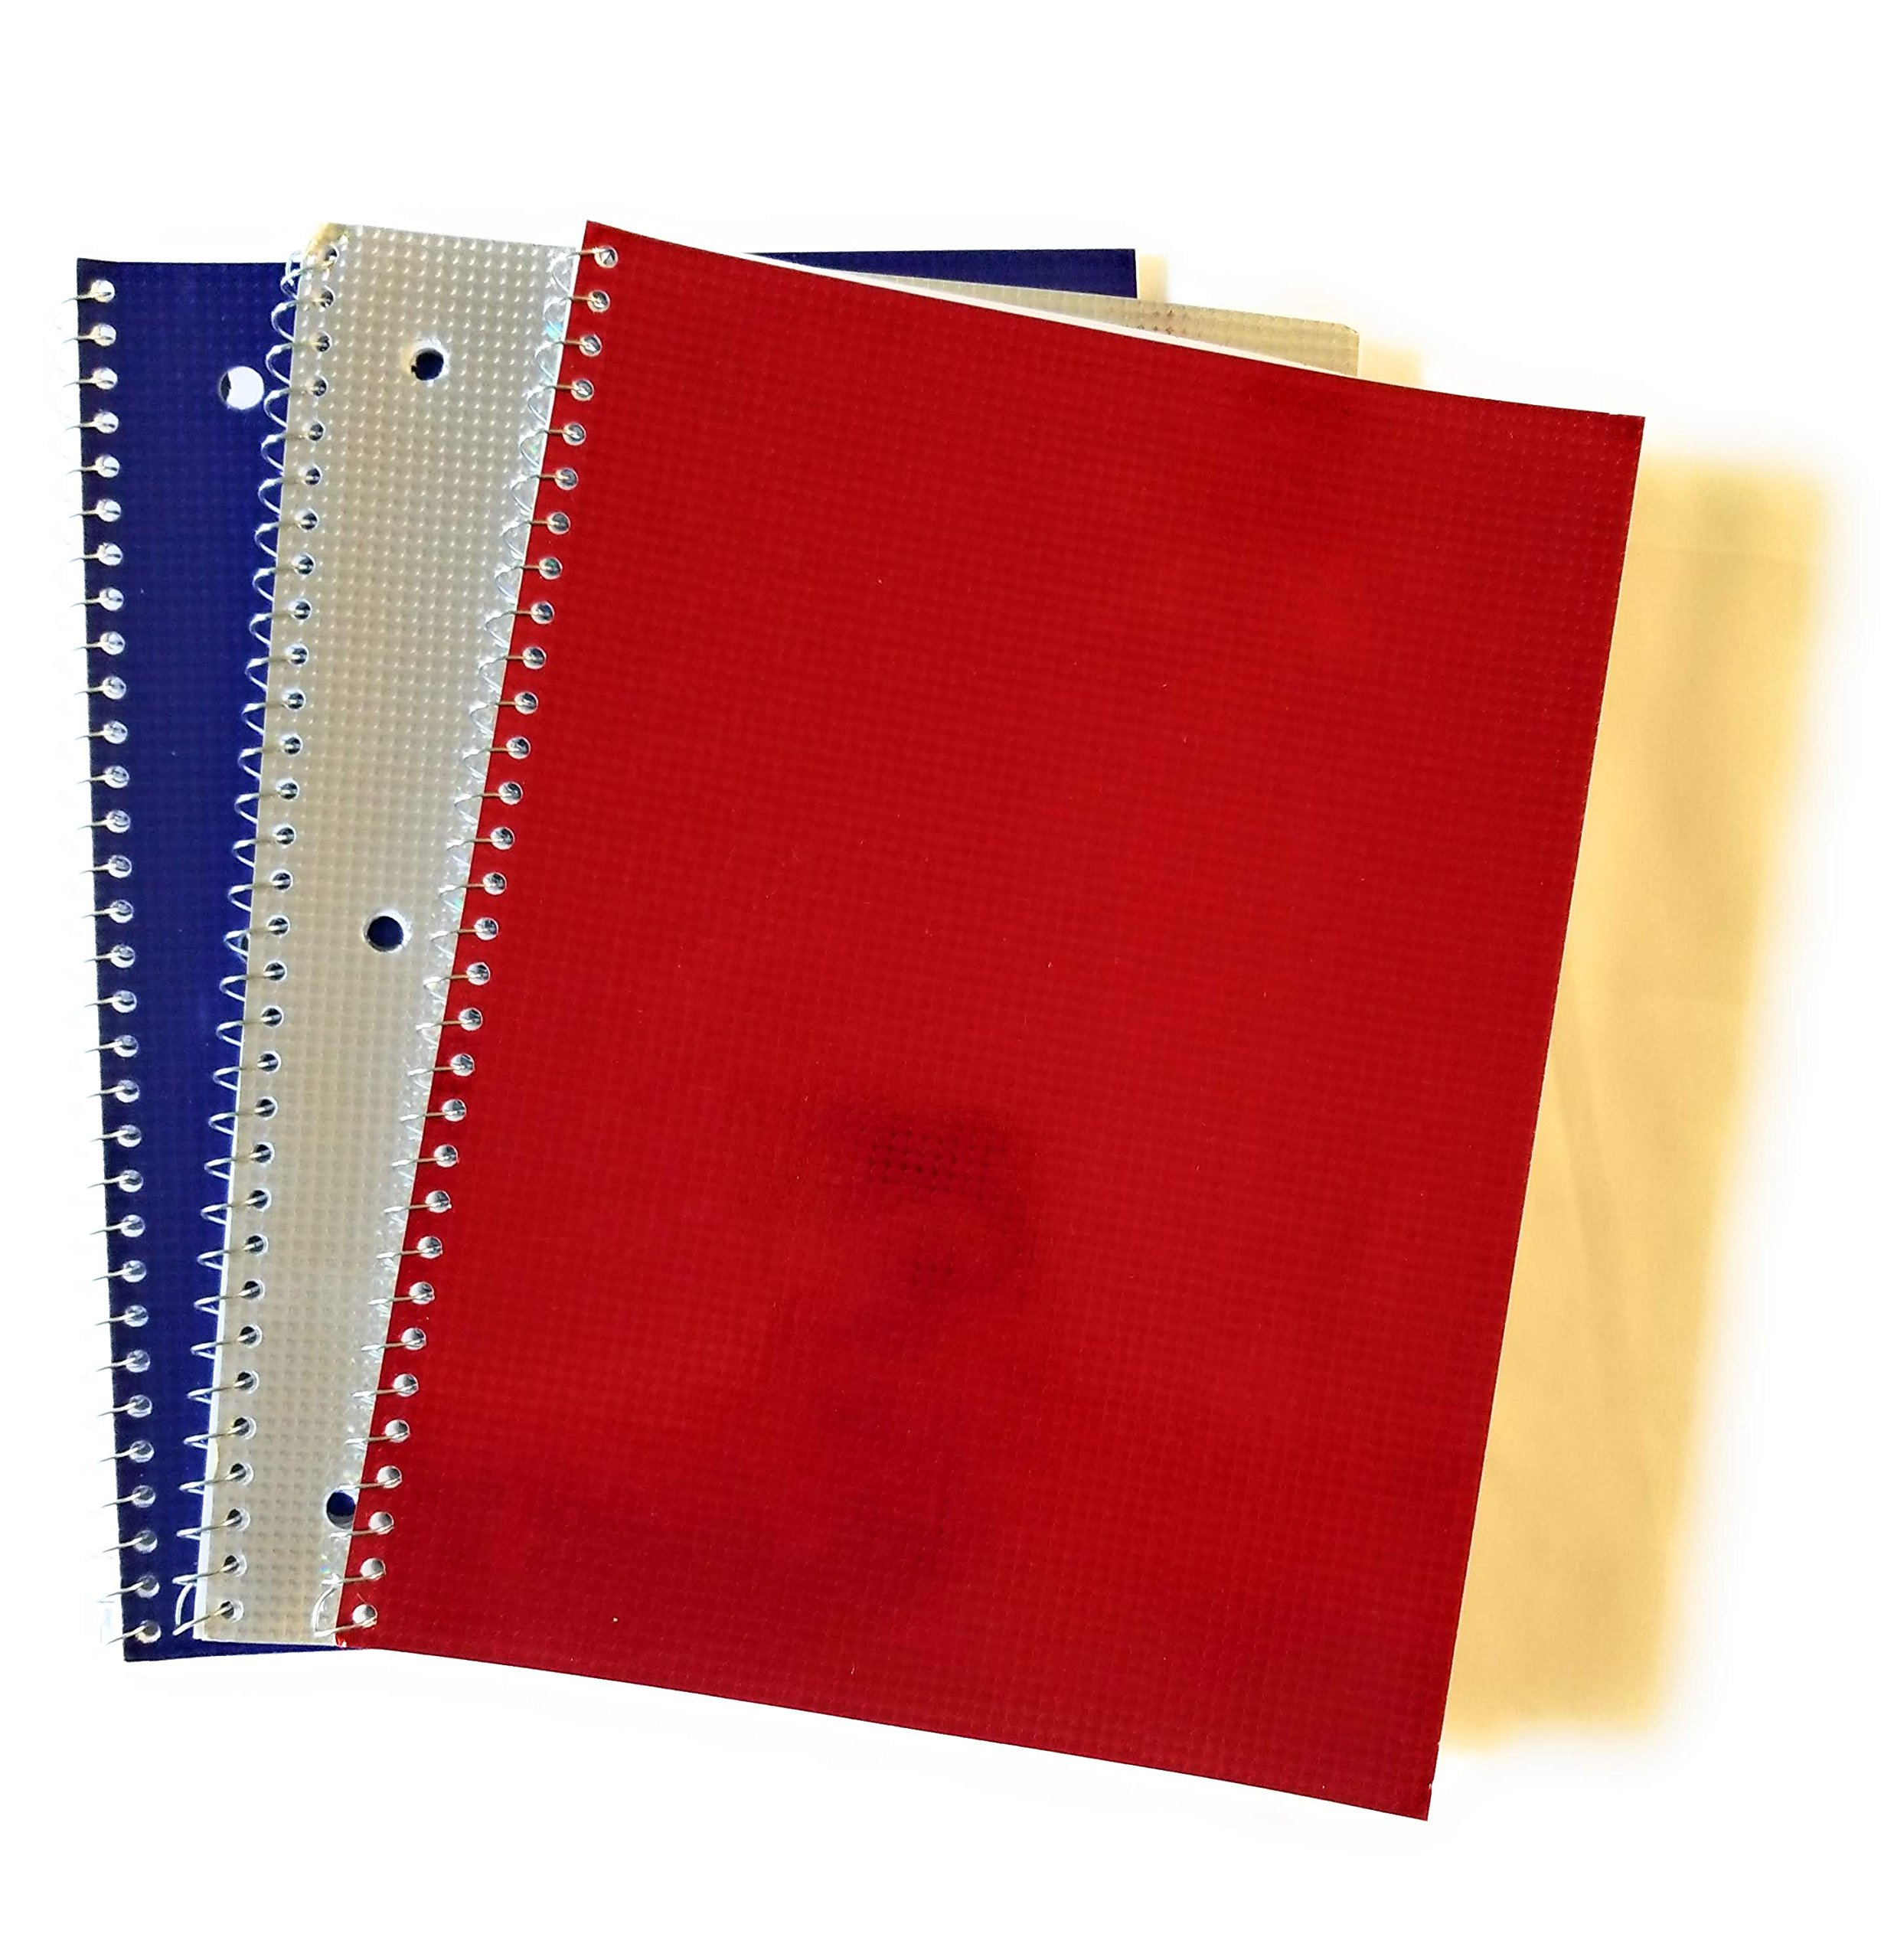 Set of 3 Holographic Wide-Ruled Spiral Notebooks - Red, Silver & Blue